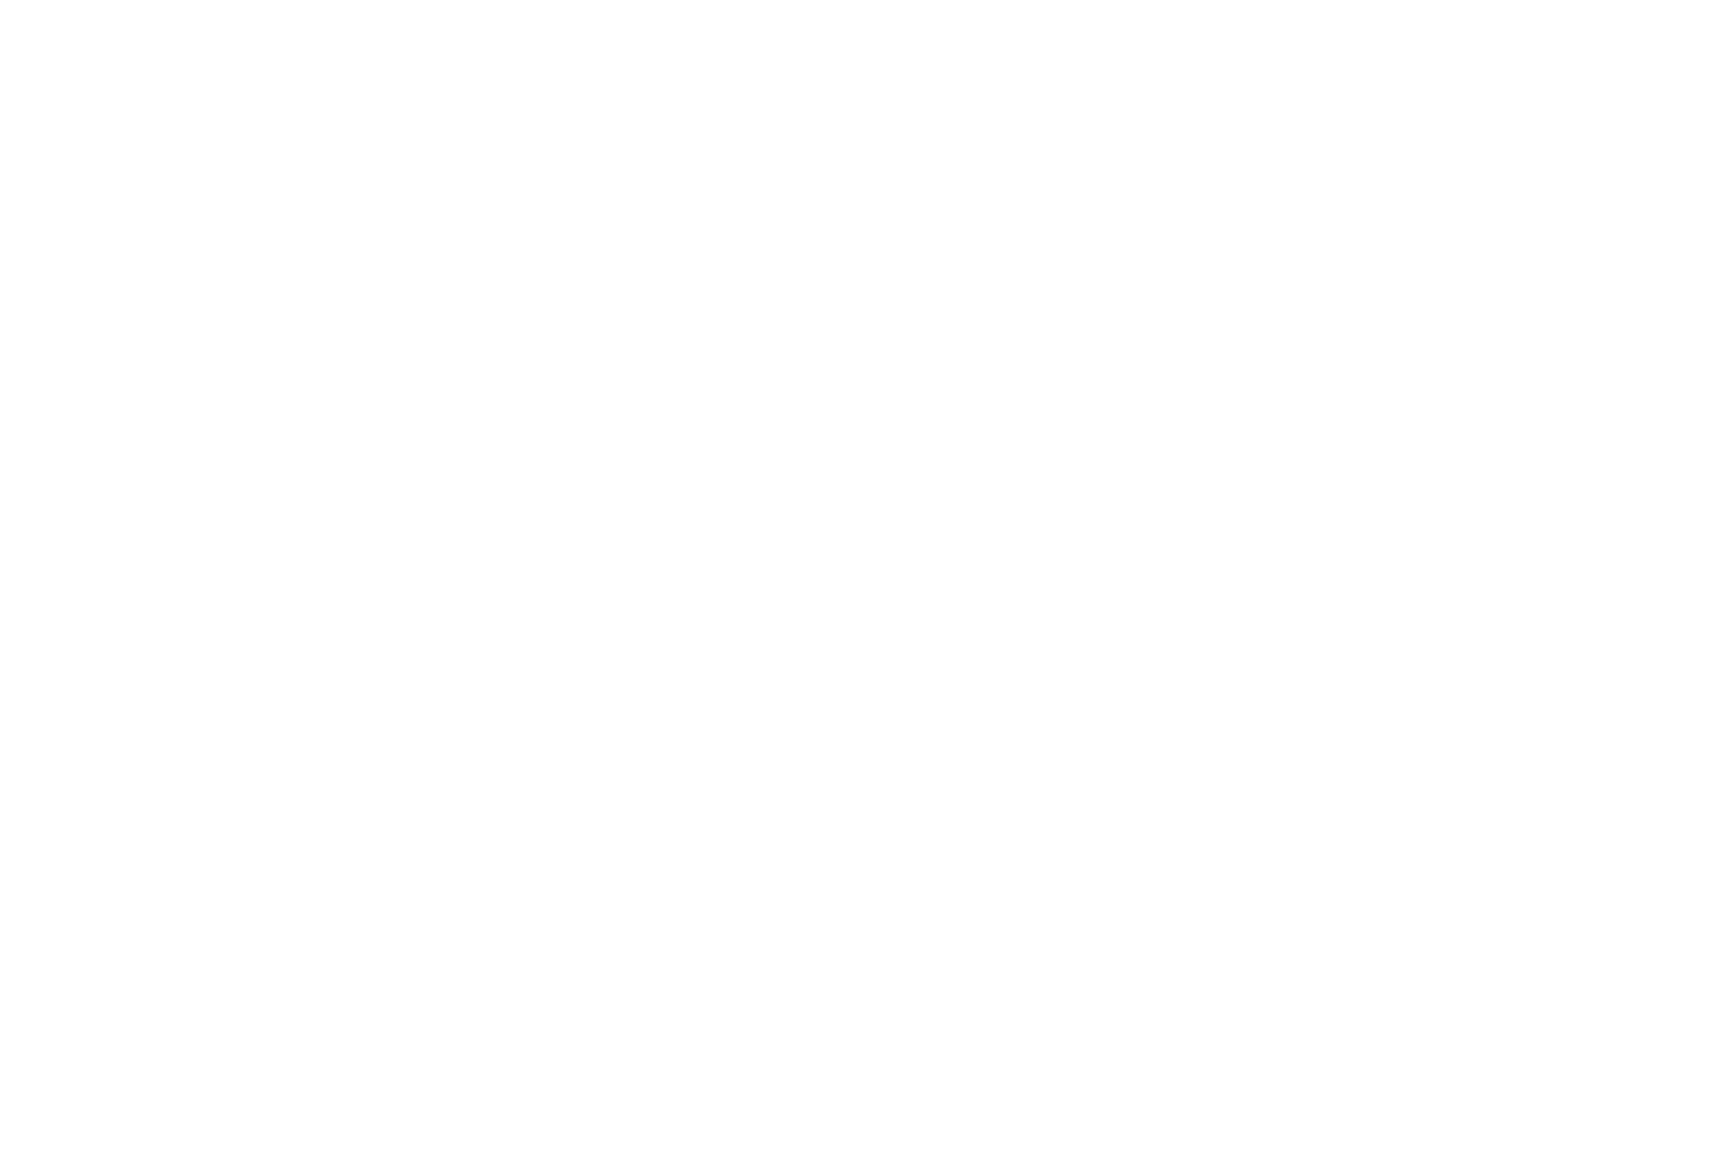 Winner 2018 - Taormina Film Festival - Best Independent Feature-2.png